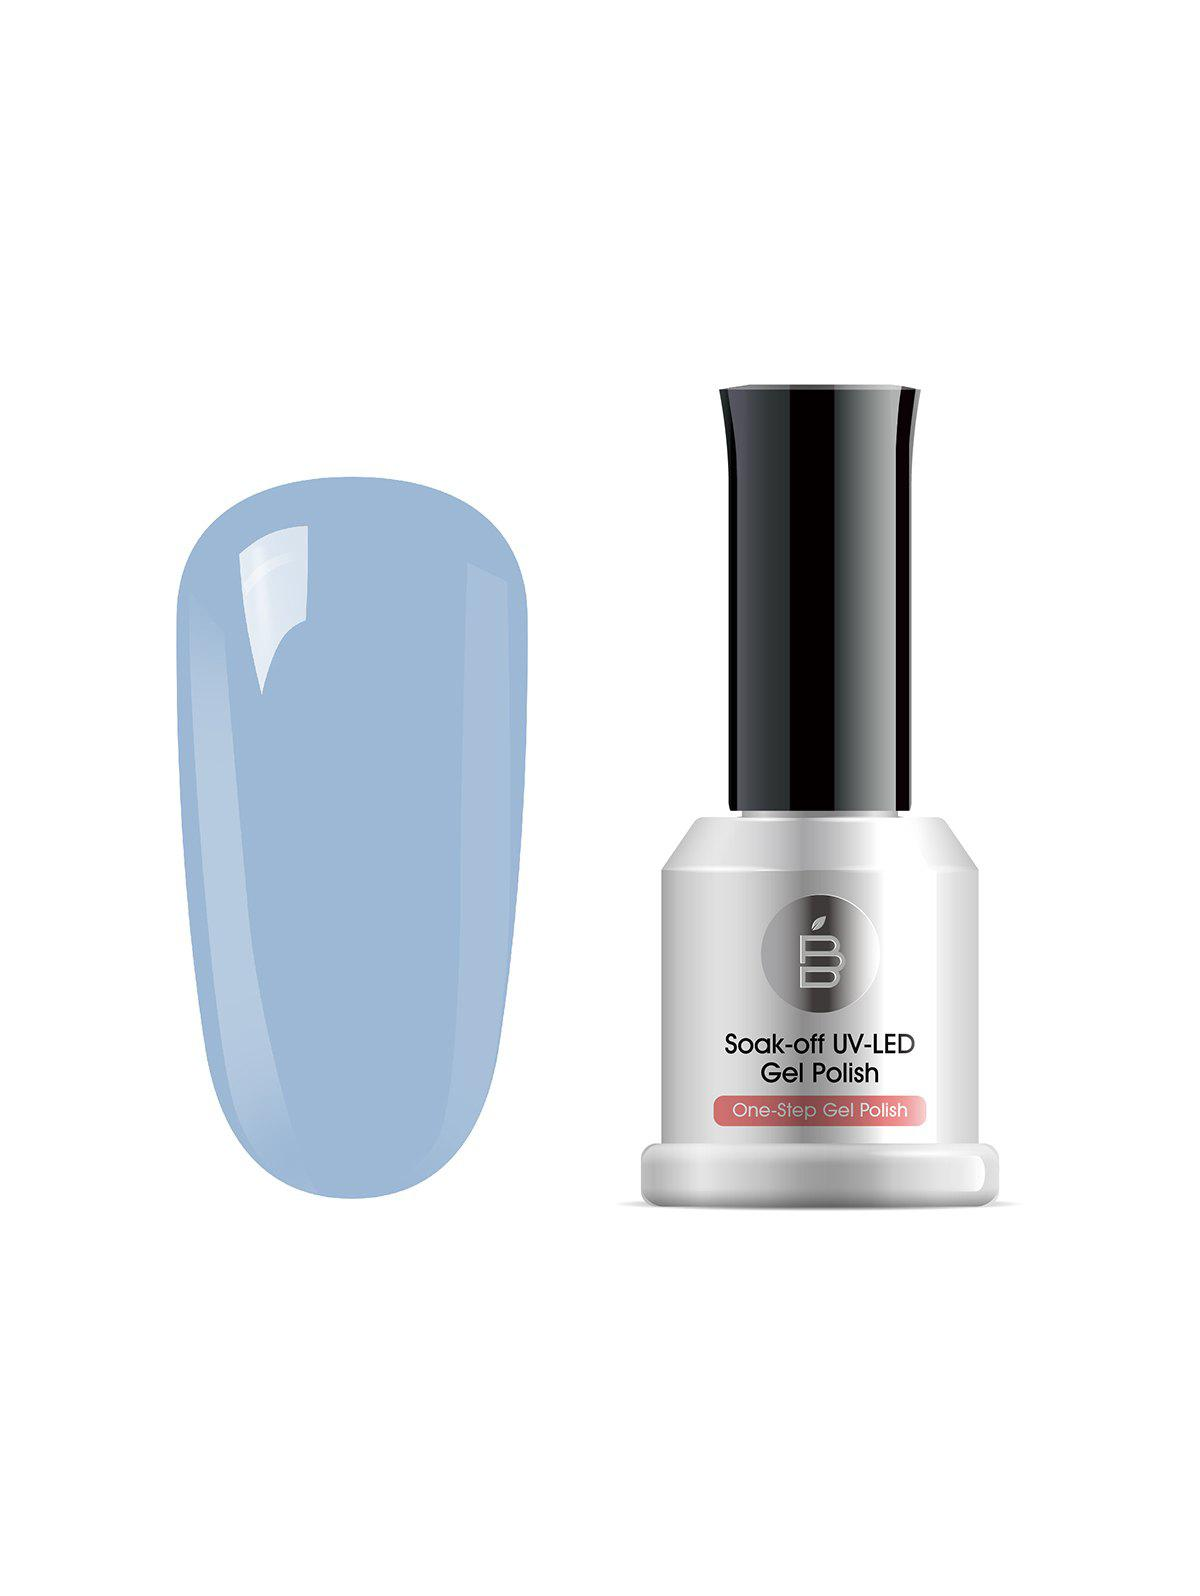 Soak-off UV-LED Gel Polish - POWDER BLUE